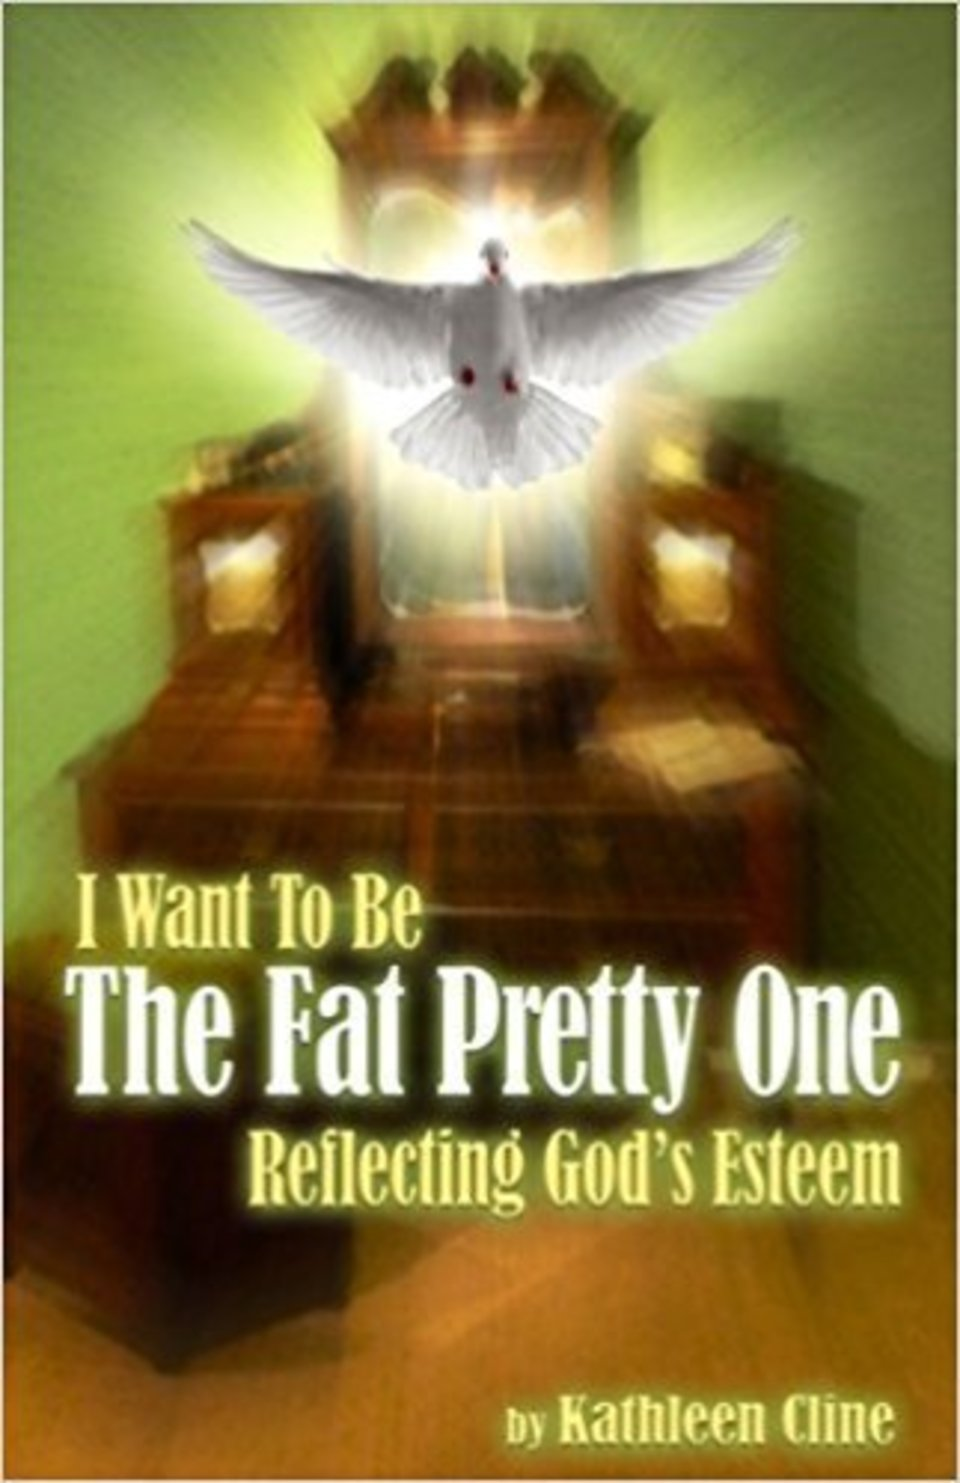 I want to be the fat pretty one20170516 31228 e29zeq